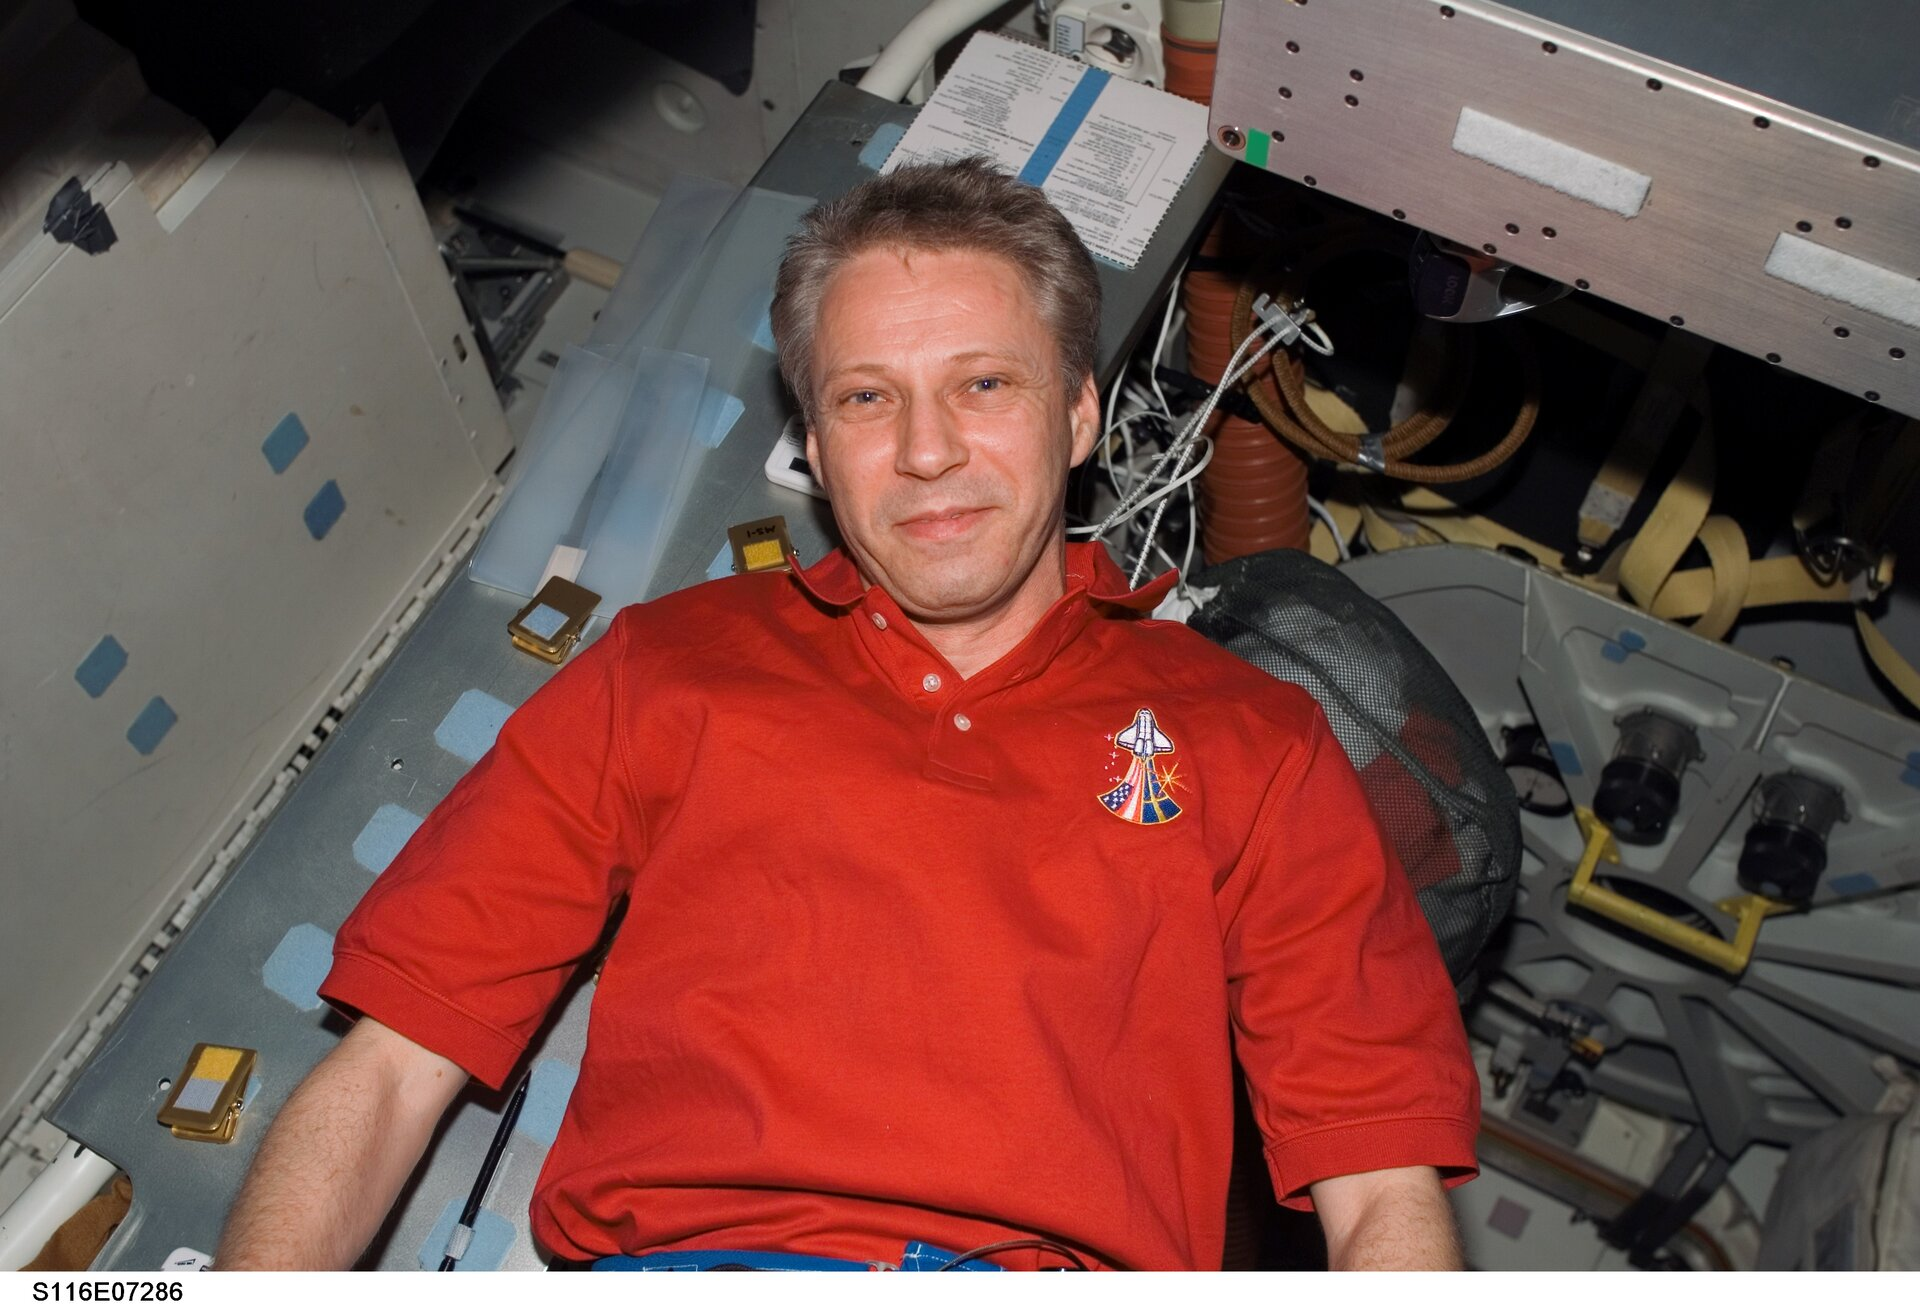 Thomas Reiter took part in the first long-duration mission on the ISS